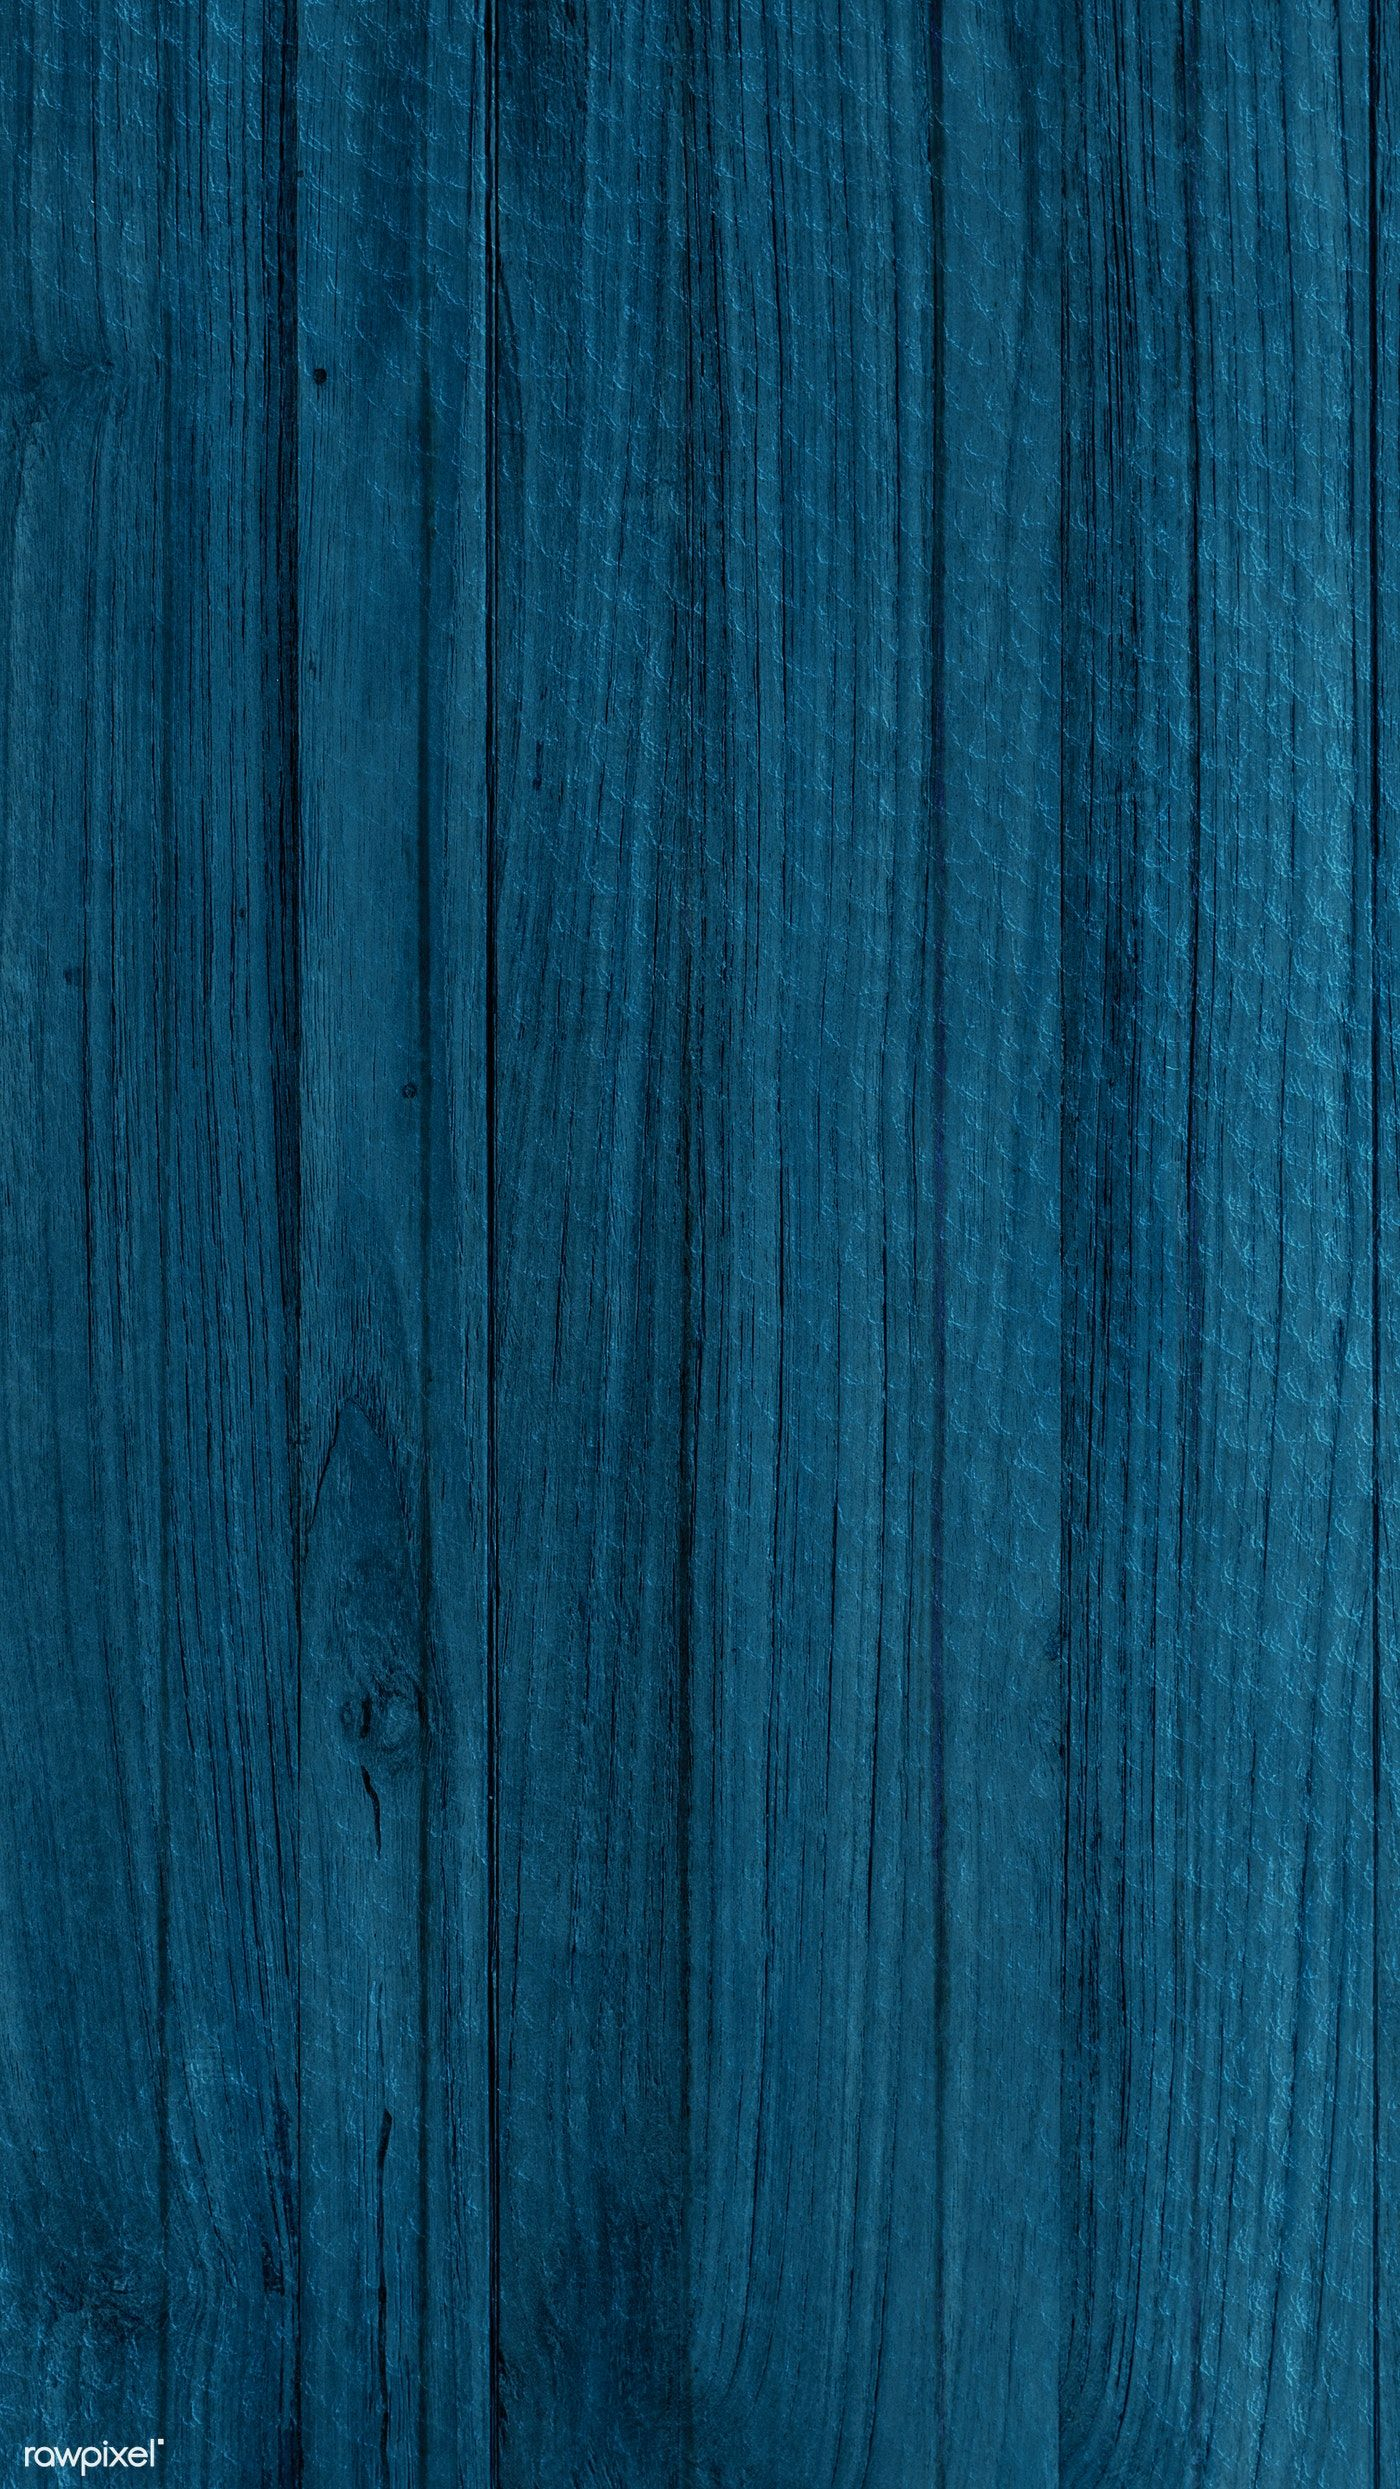 Blue Wood Textured Mobile Wallpaper Background Free Image By Rawpixel Com Marinemynt Wood Texture Blue Wood Wood Wallpaper